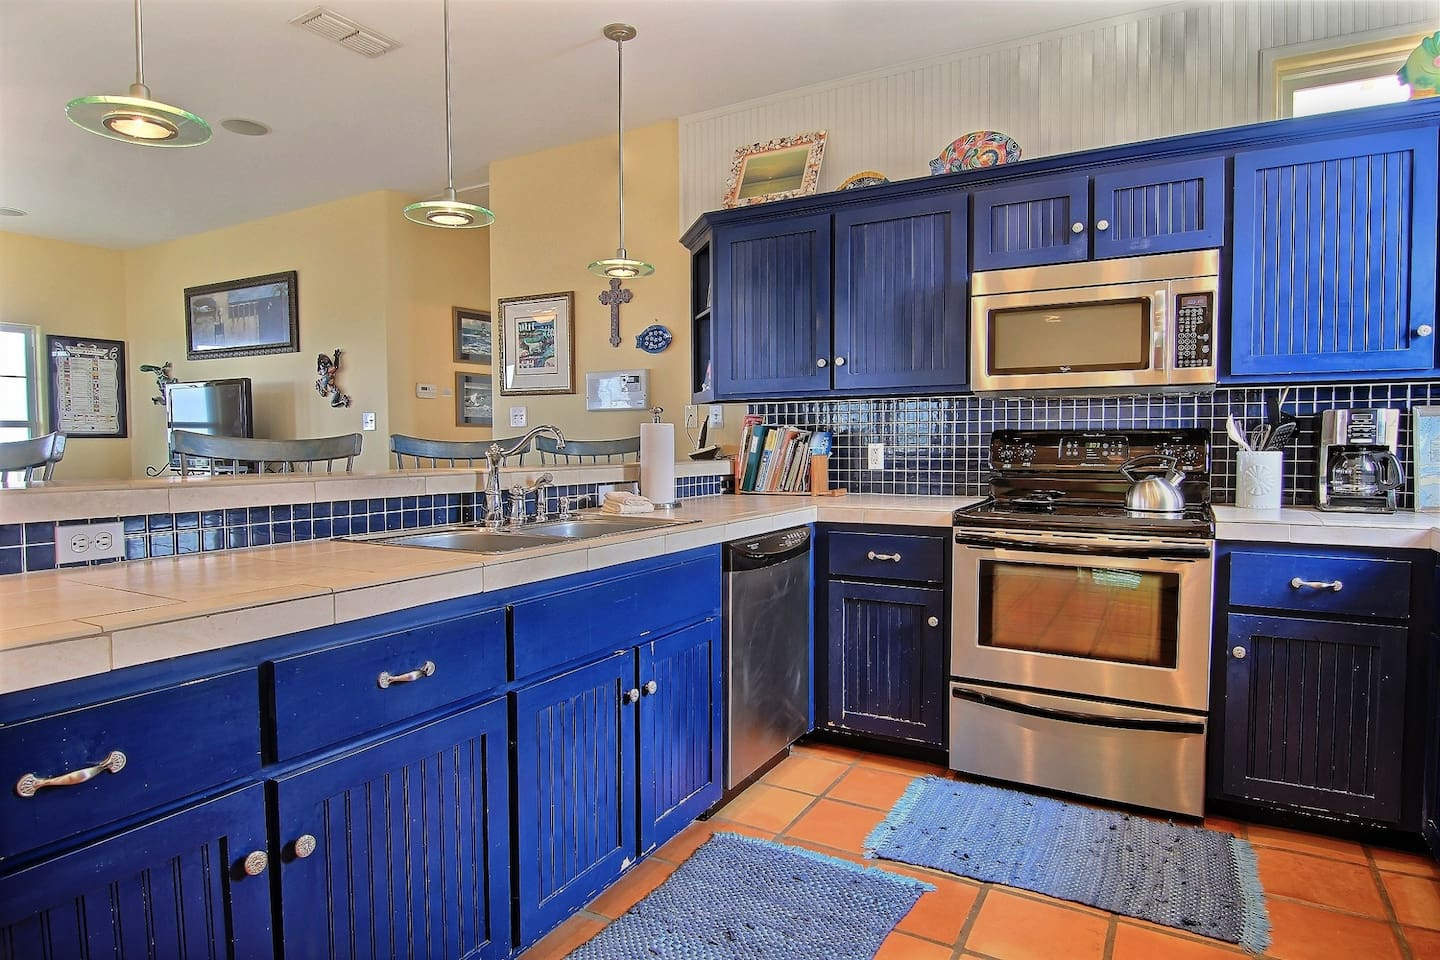 Ample room for the chef to make wonderful dishes in this gourmet kitchen! Fully stocked with lots of space!